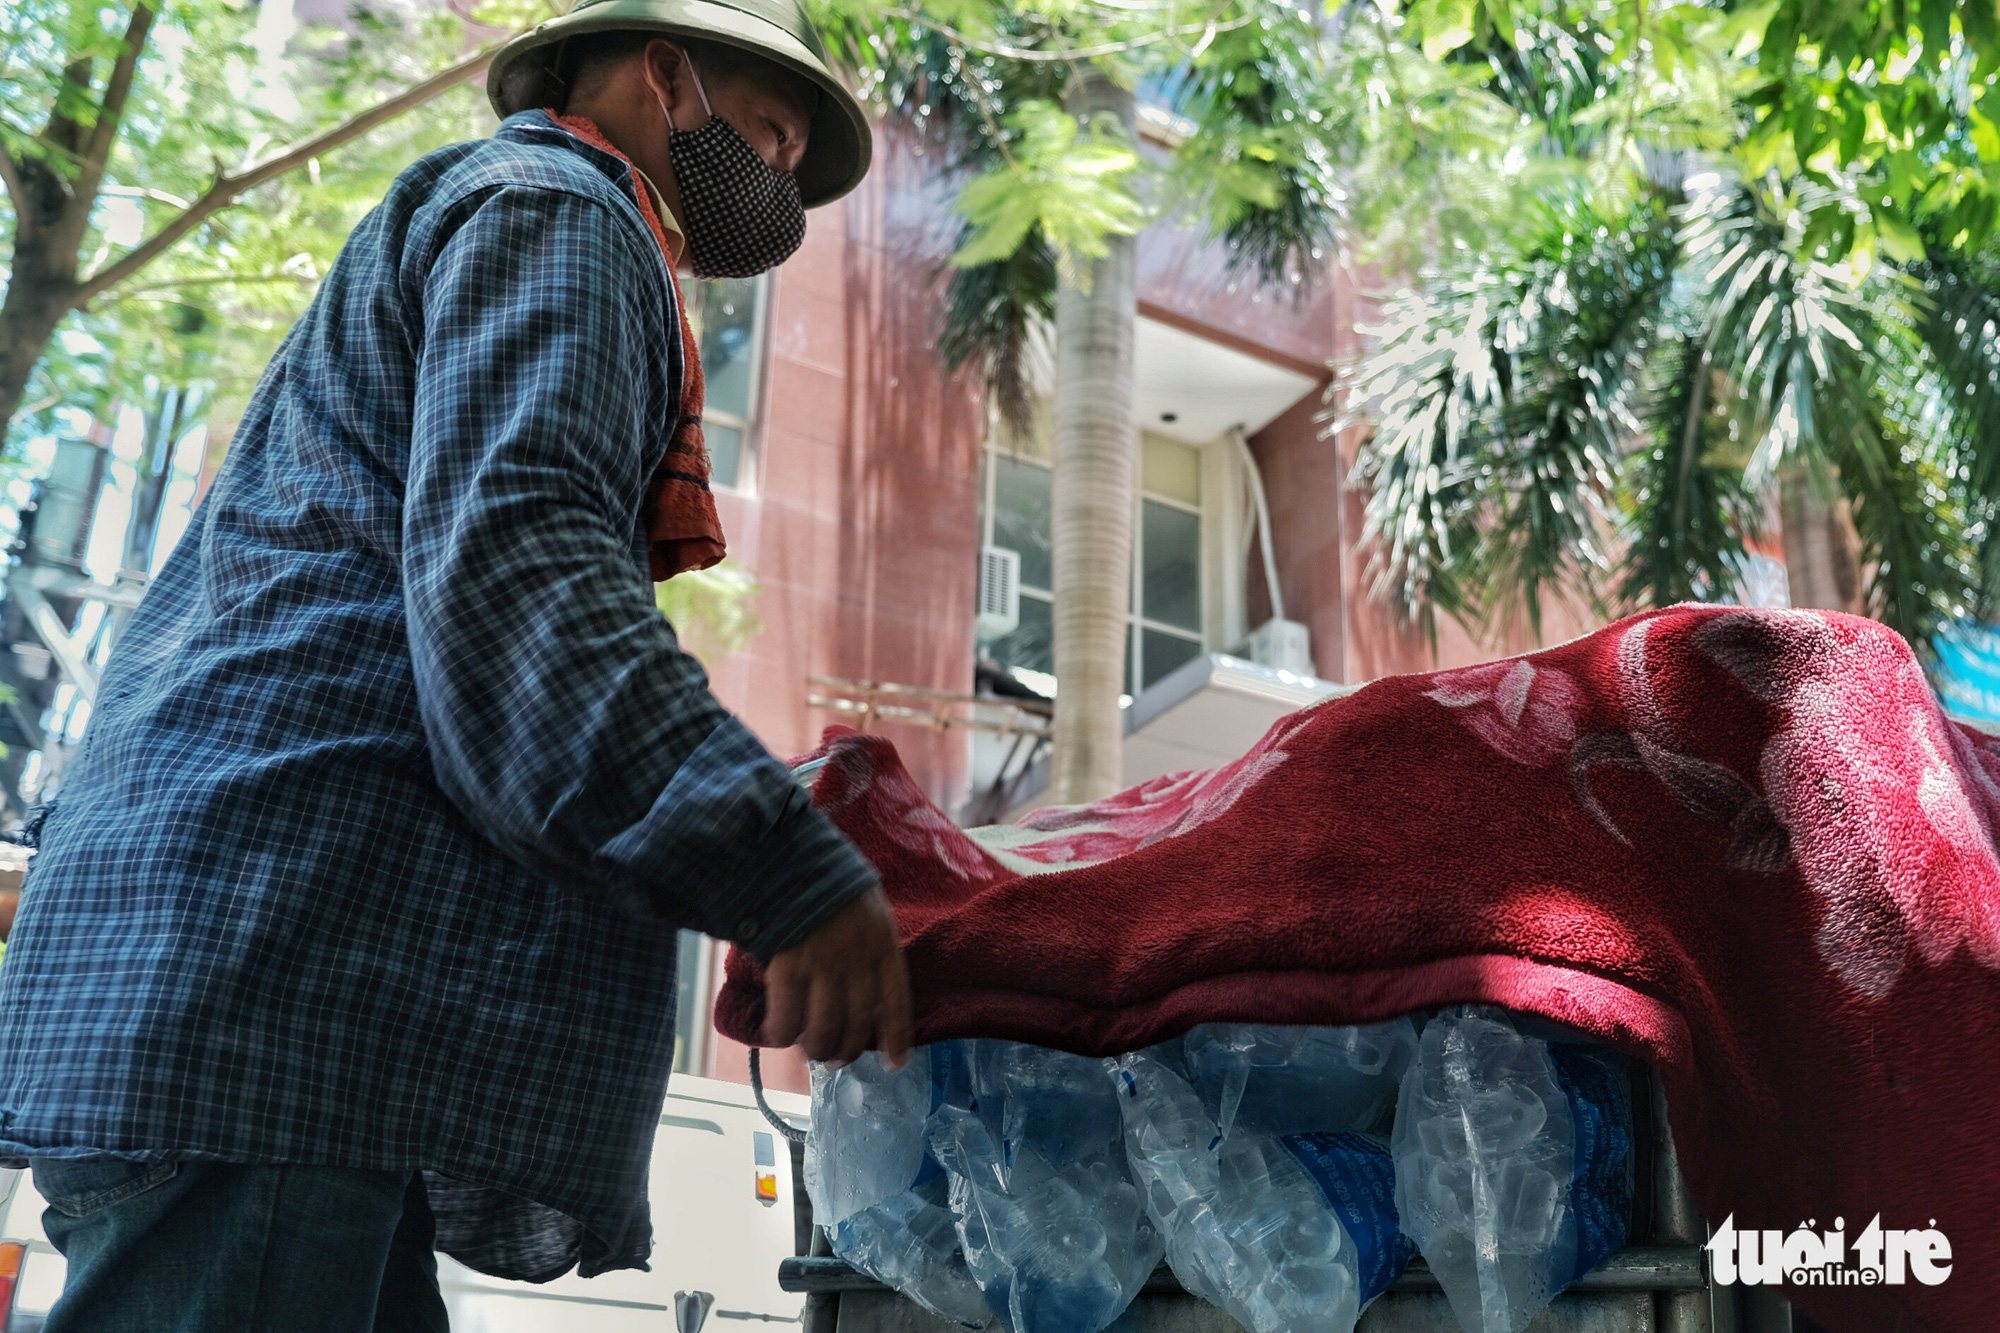 A delivery man covers ice packs with a blanket to keep them from melting in Hanoi, June 23, 2020. Photo: Mai Thuong / Tuoi Tre